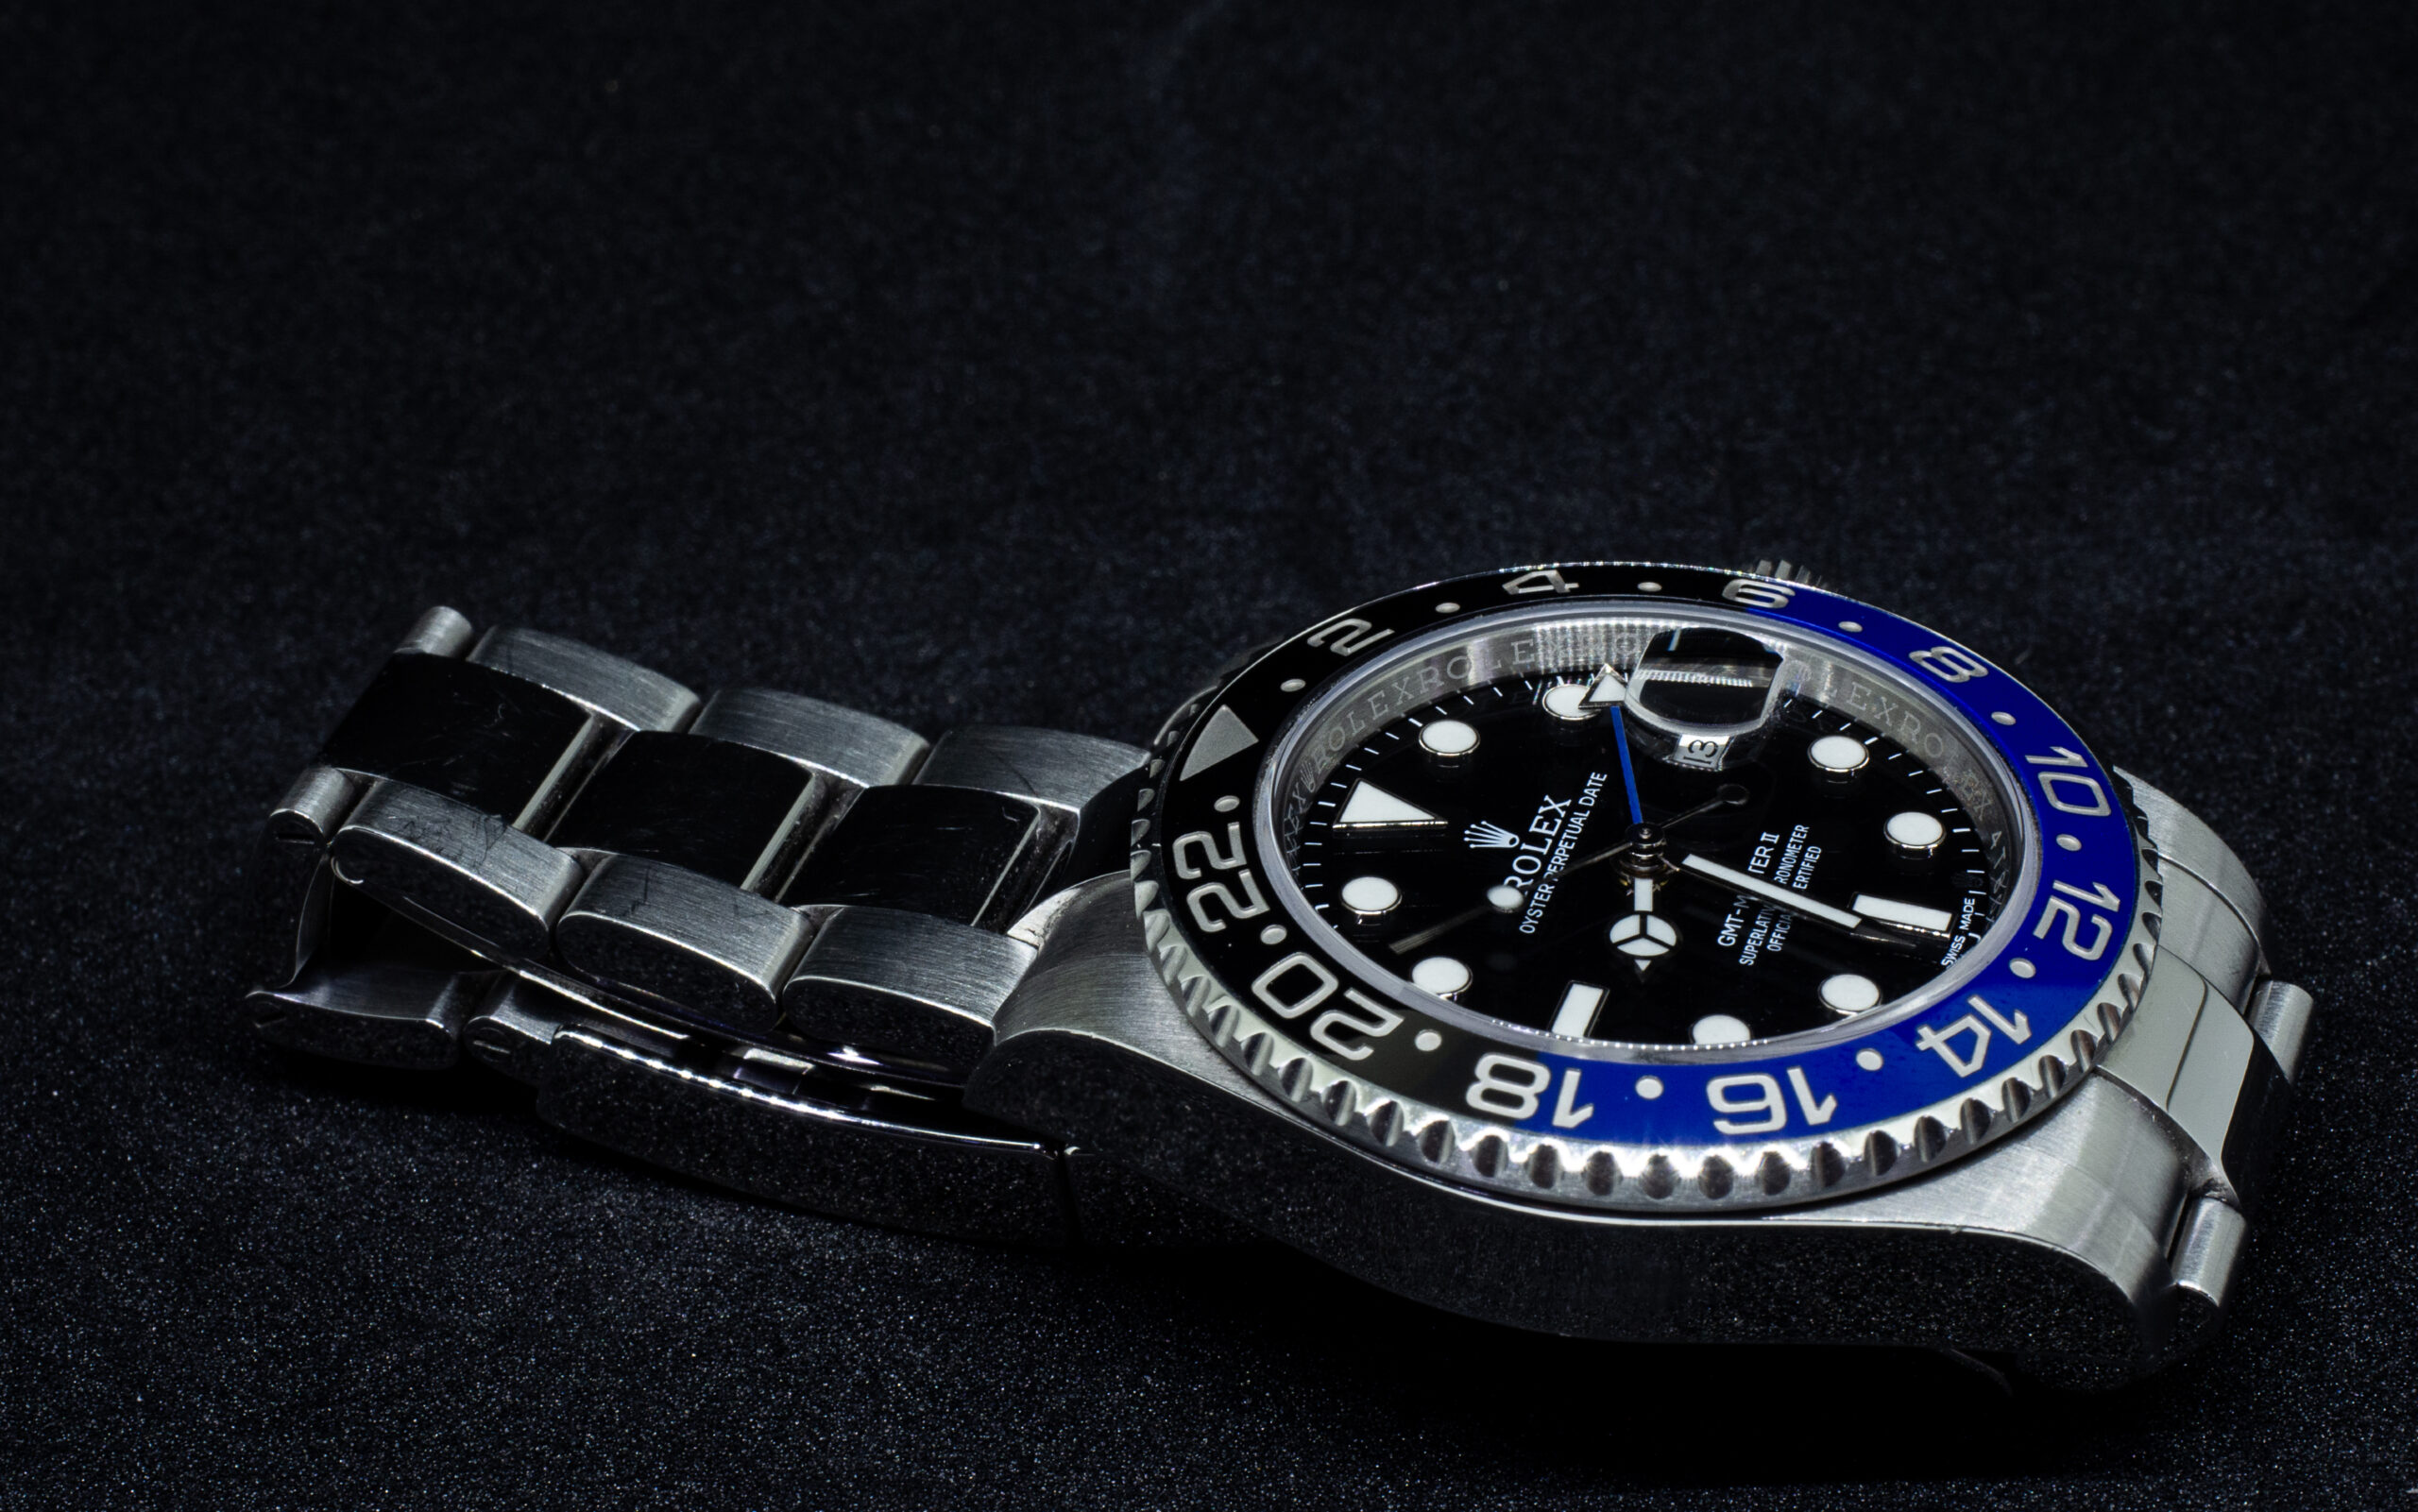 The Complete History Of The Rolex GMT Master